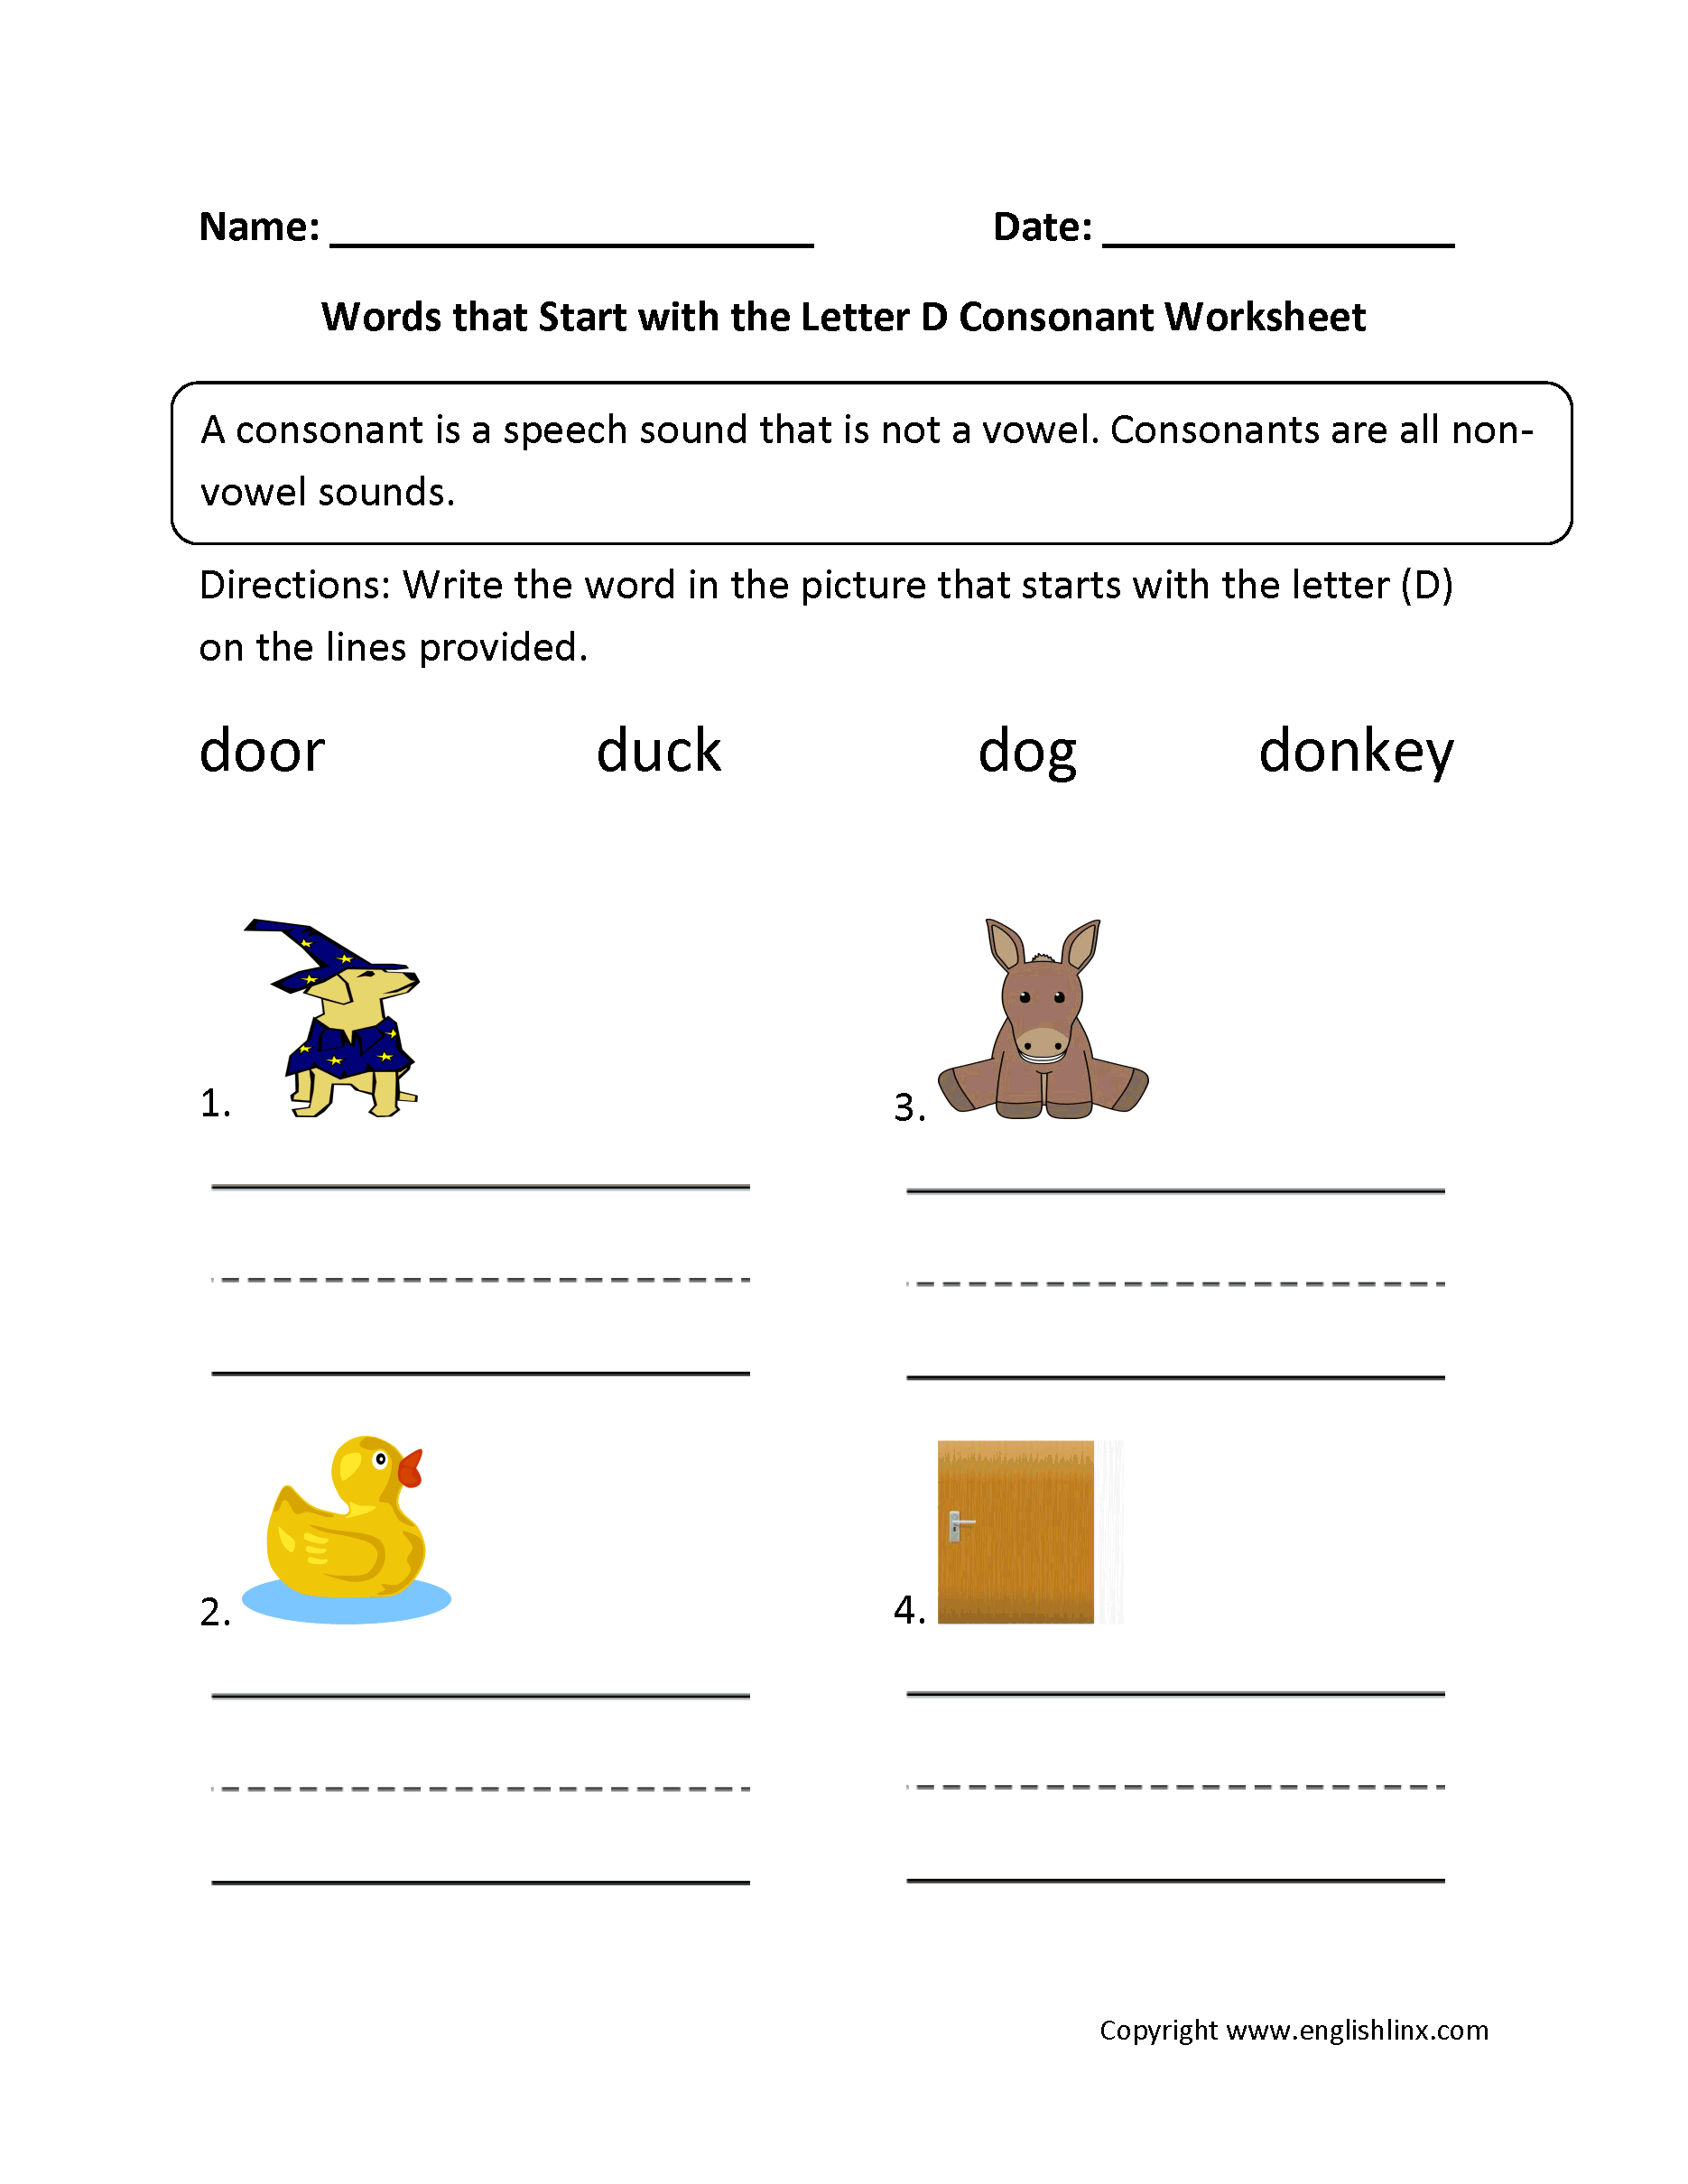 words that start with the letter d phonics worksheets consonant worksheets 25730 | Words Start Letter D Consonant Worksheet